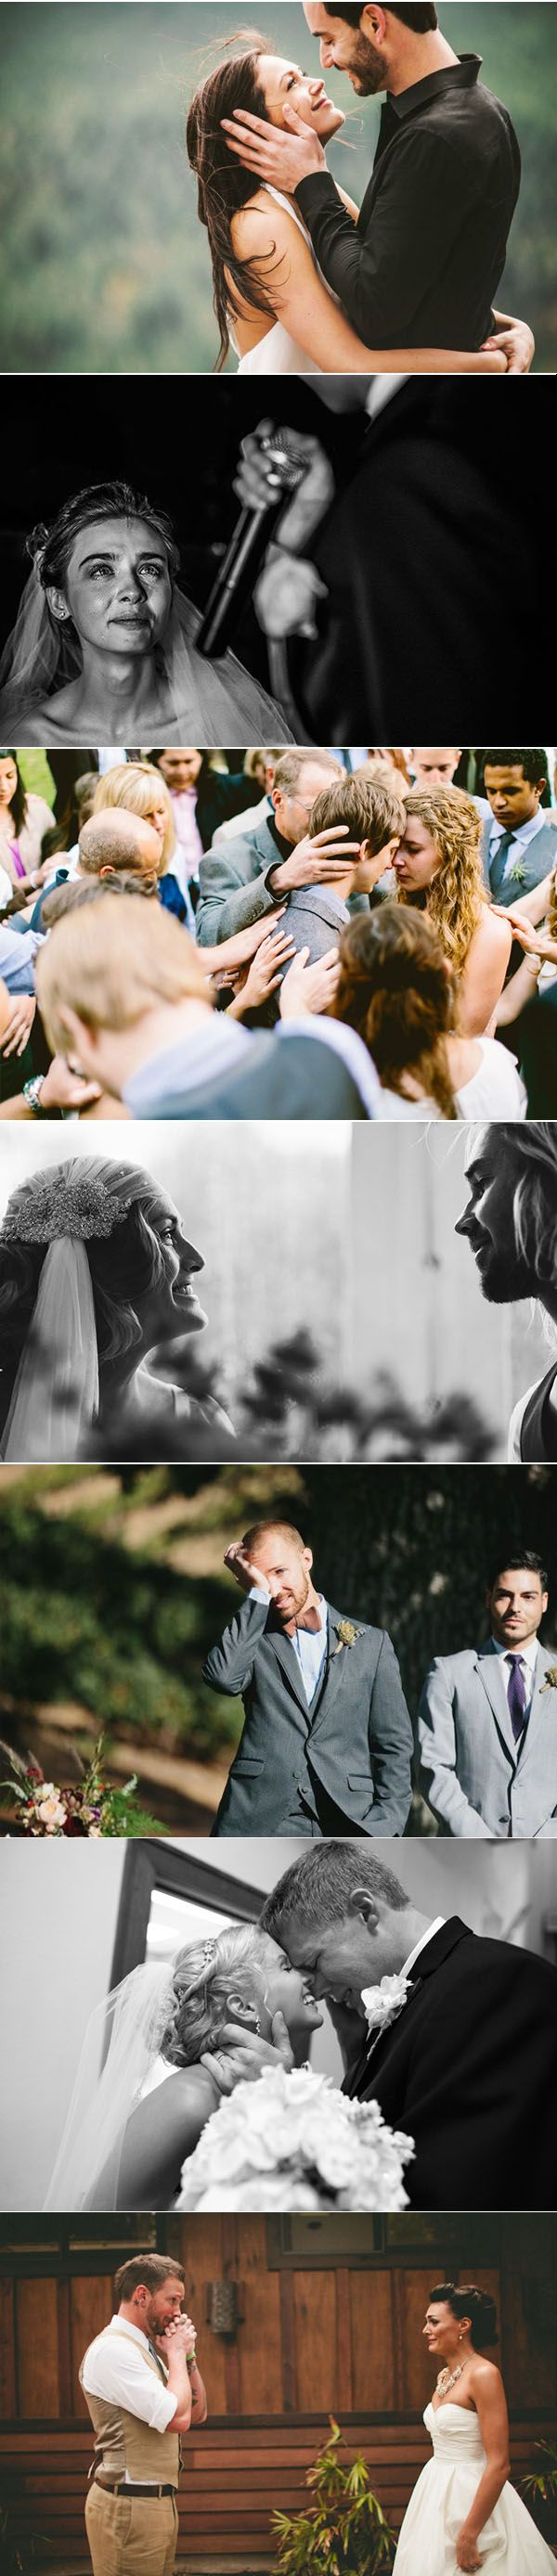 I have seen a lot of gorgeous wedding portraits of brides and groom, but those that touch me the most are always real, tear-jerking, candid moments captured in real weddings. They have showed us the true emotions of brides and grooms that only love can tell. A precious photo has the power to show how …